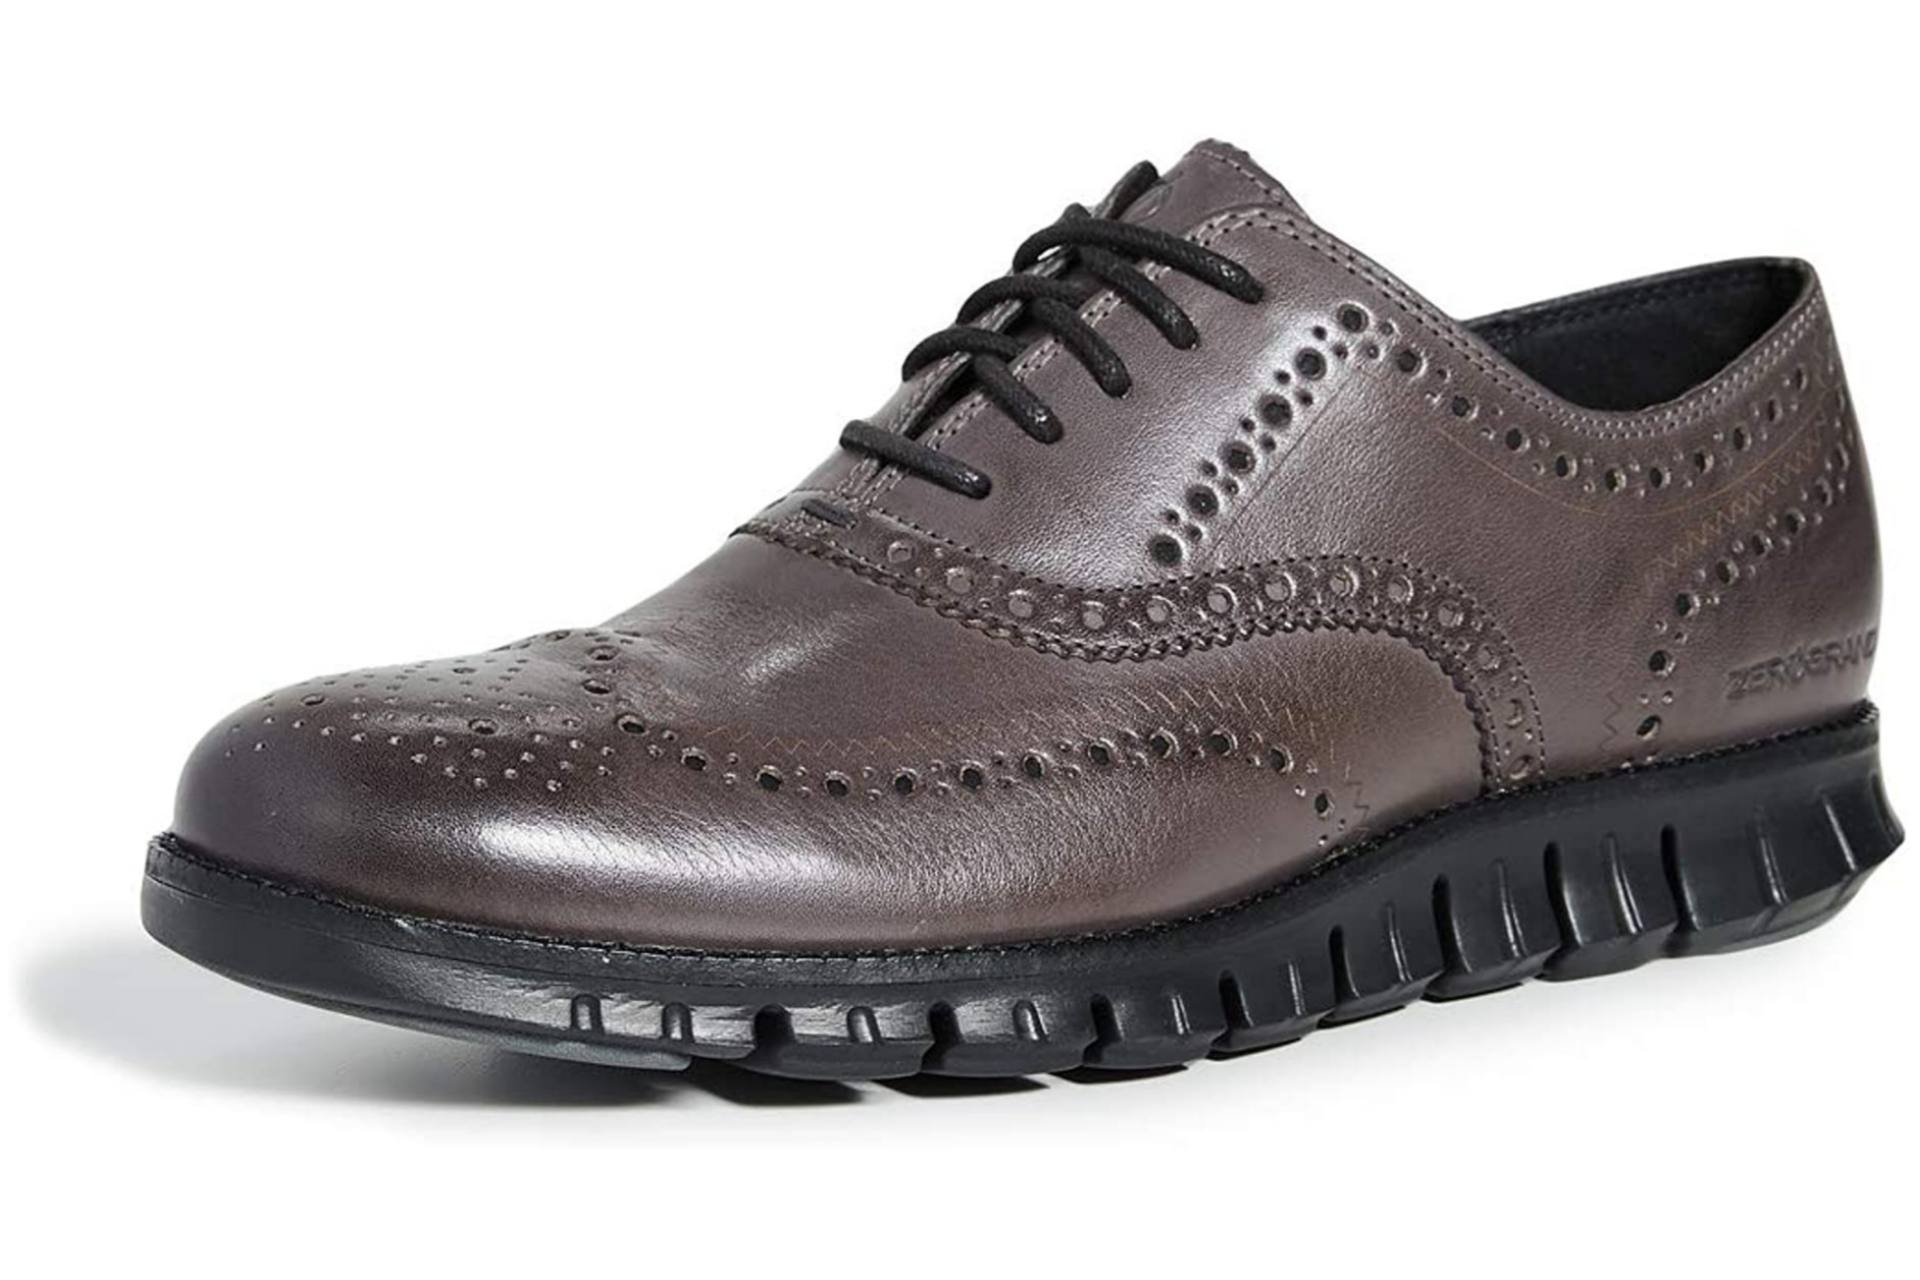 Men's work oxford shoes